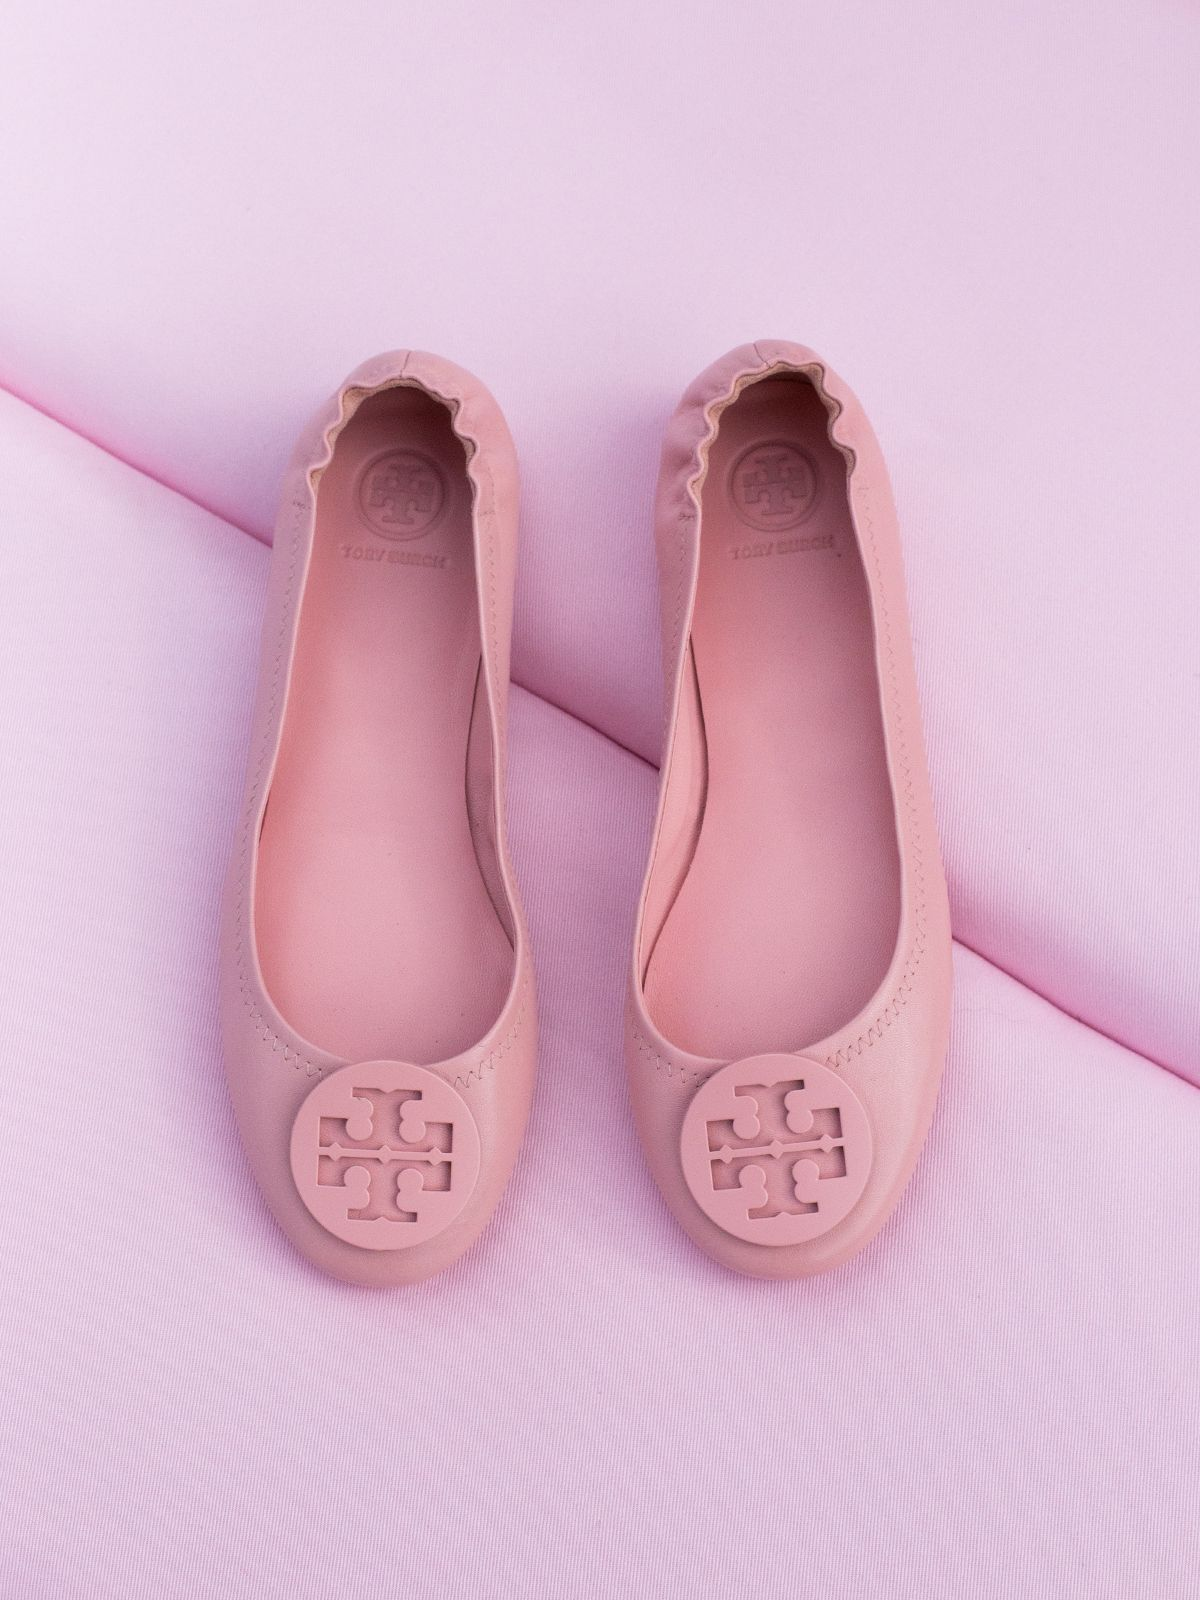 7bc21e4c733 Tory Burch Minnie Flats